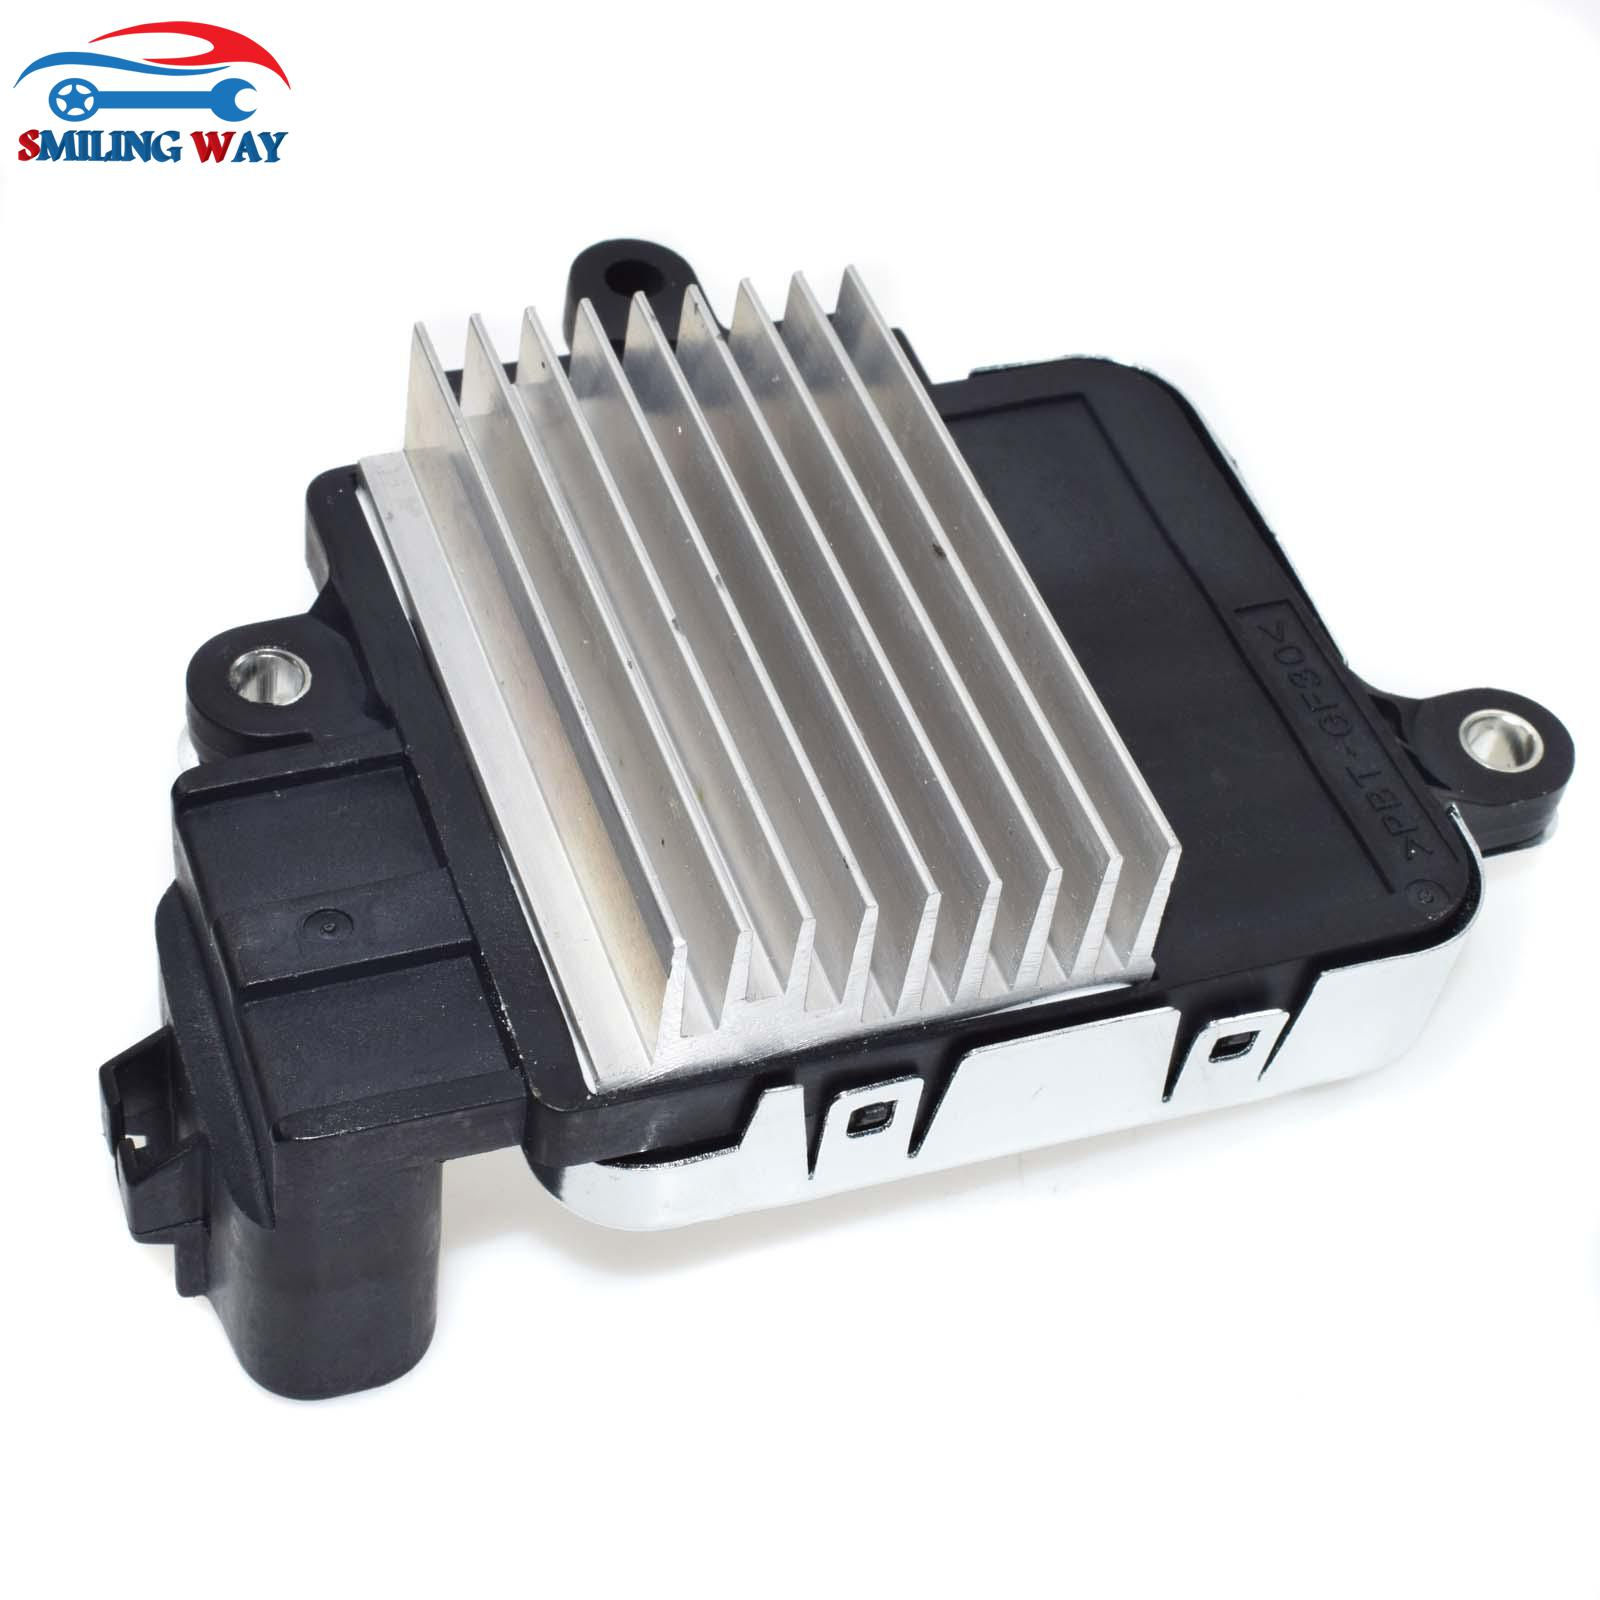 smiling way blower motor resistor for toyota camry highlander venza avalon rav4 sienna lexus es350 gs300 gs350 gs430 gs450h in blower motors from  [ 1600 x 1600 Pixel ]